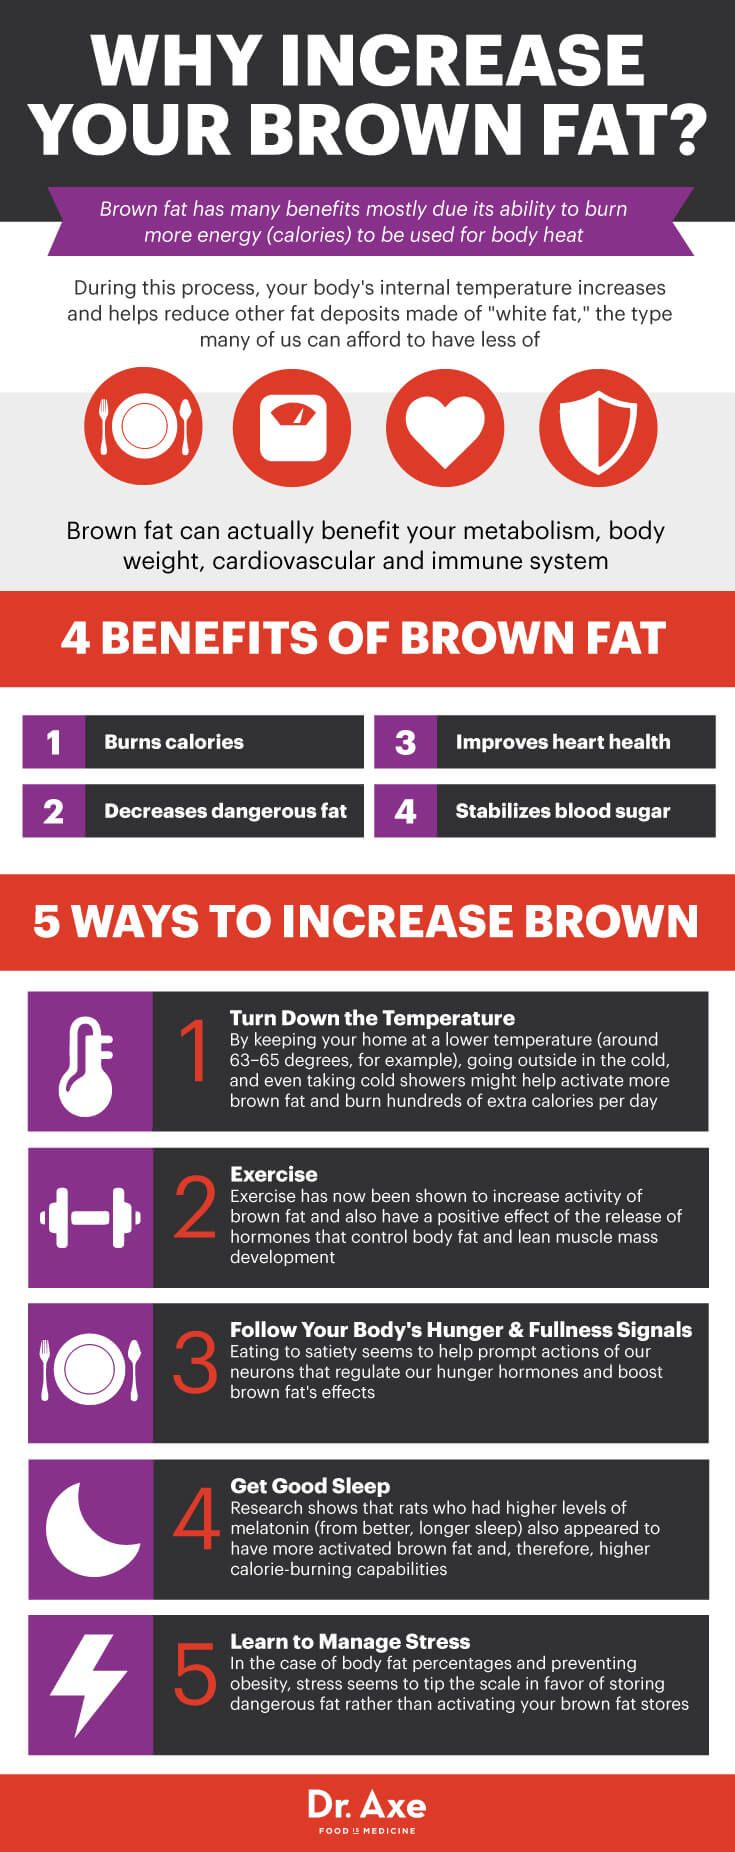 5 Ways to Increase Your Brown Fat To Burn More Calories